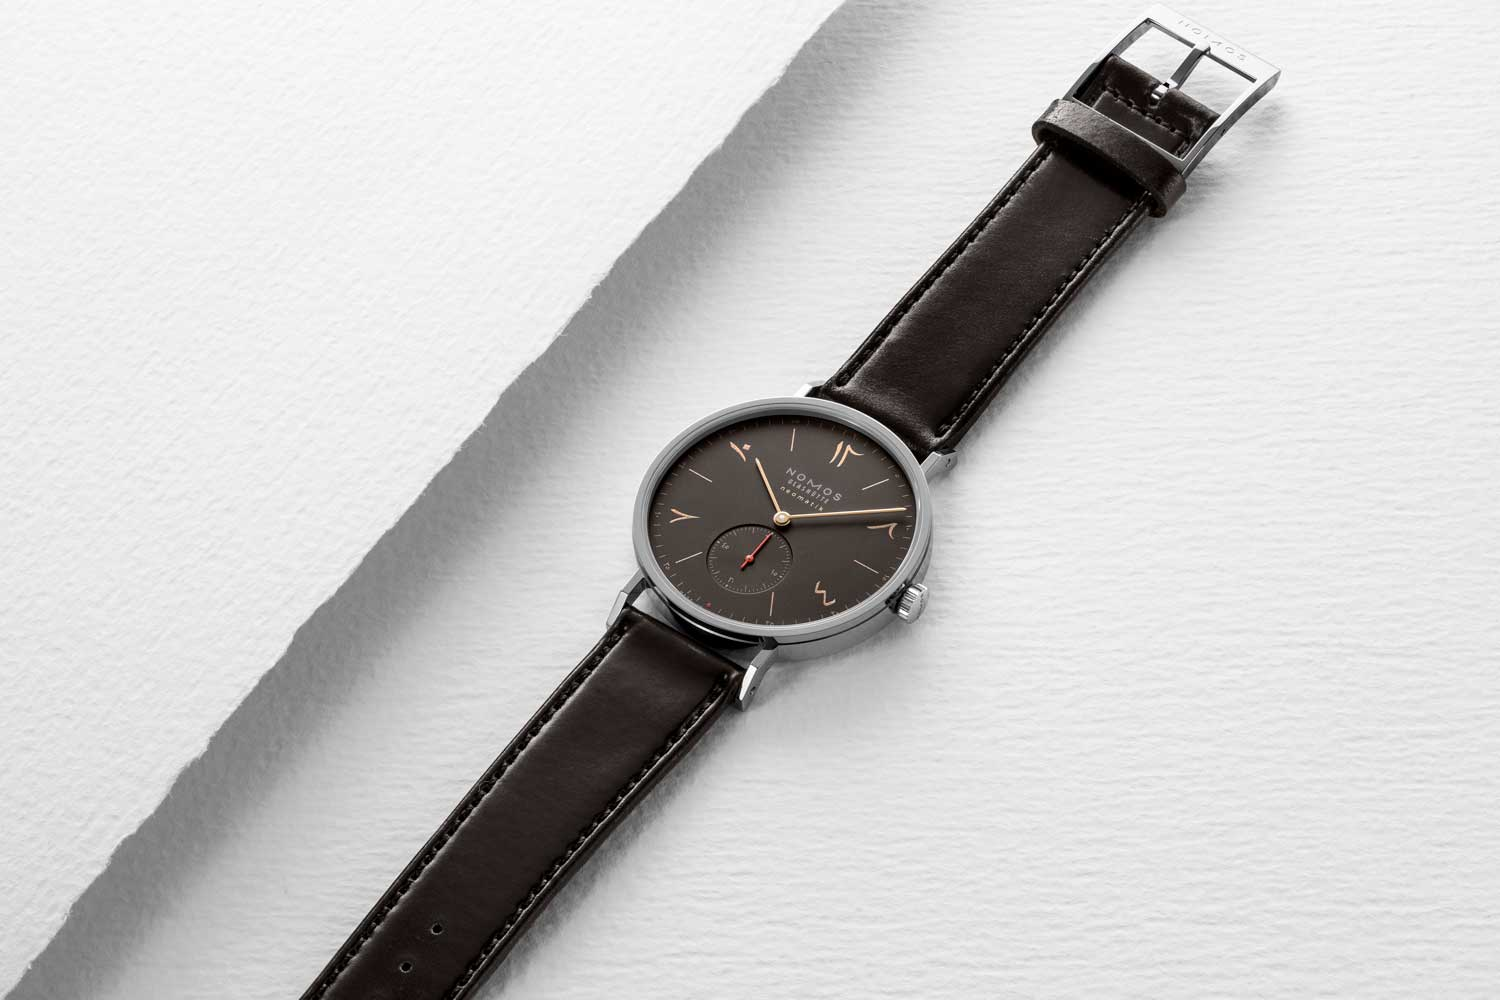 Nomos Red Dot (Ruthenium) 2019 for The Hour Glass' 40th Anniversary (Image © Revolution)